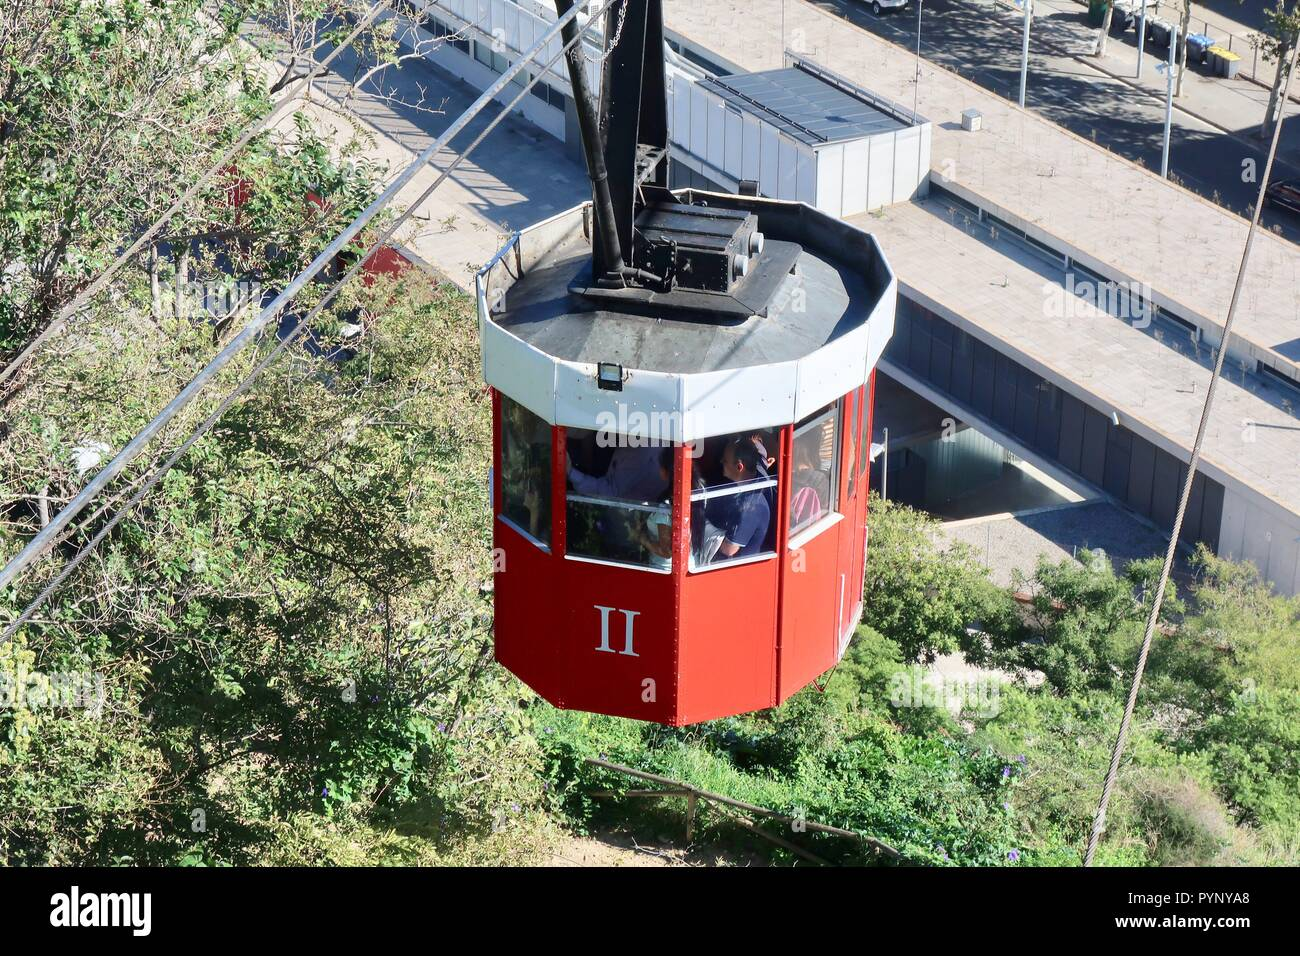 A port cable car arriving at Mont Juic Barcelona, Spain, October 2018. - Stock Image